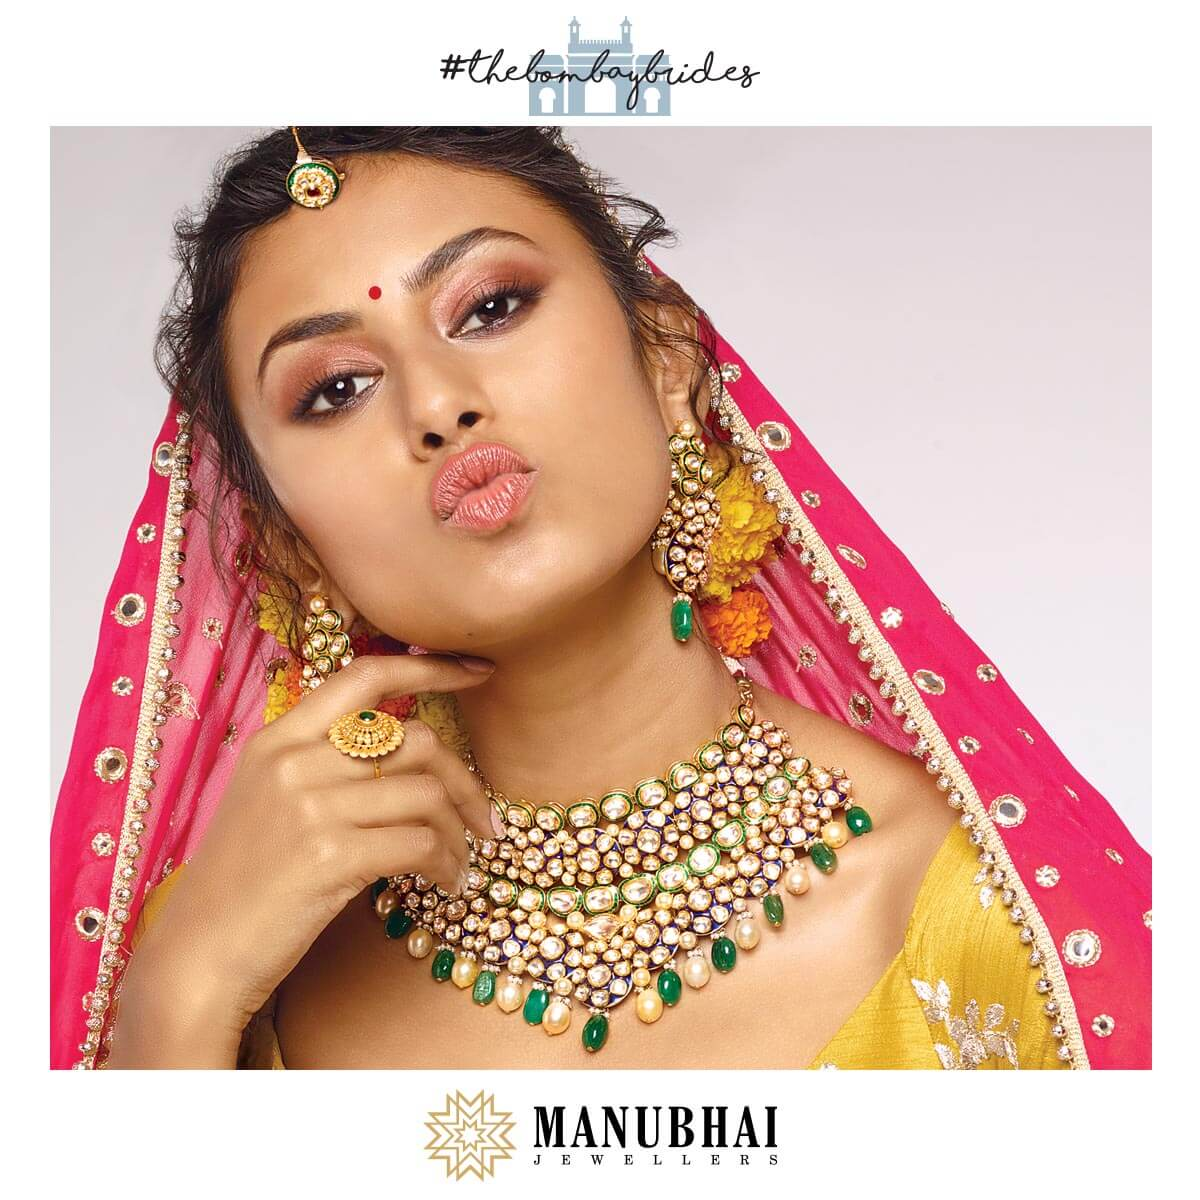 From her jhumkas to her thumkas, from her bangles to her payals, our Bombay Bride rocks all things traditional in her style exceptional.